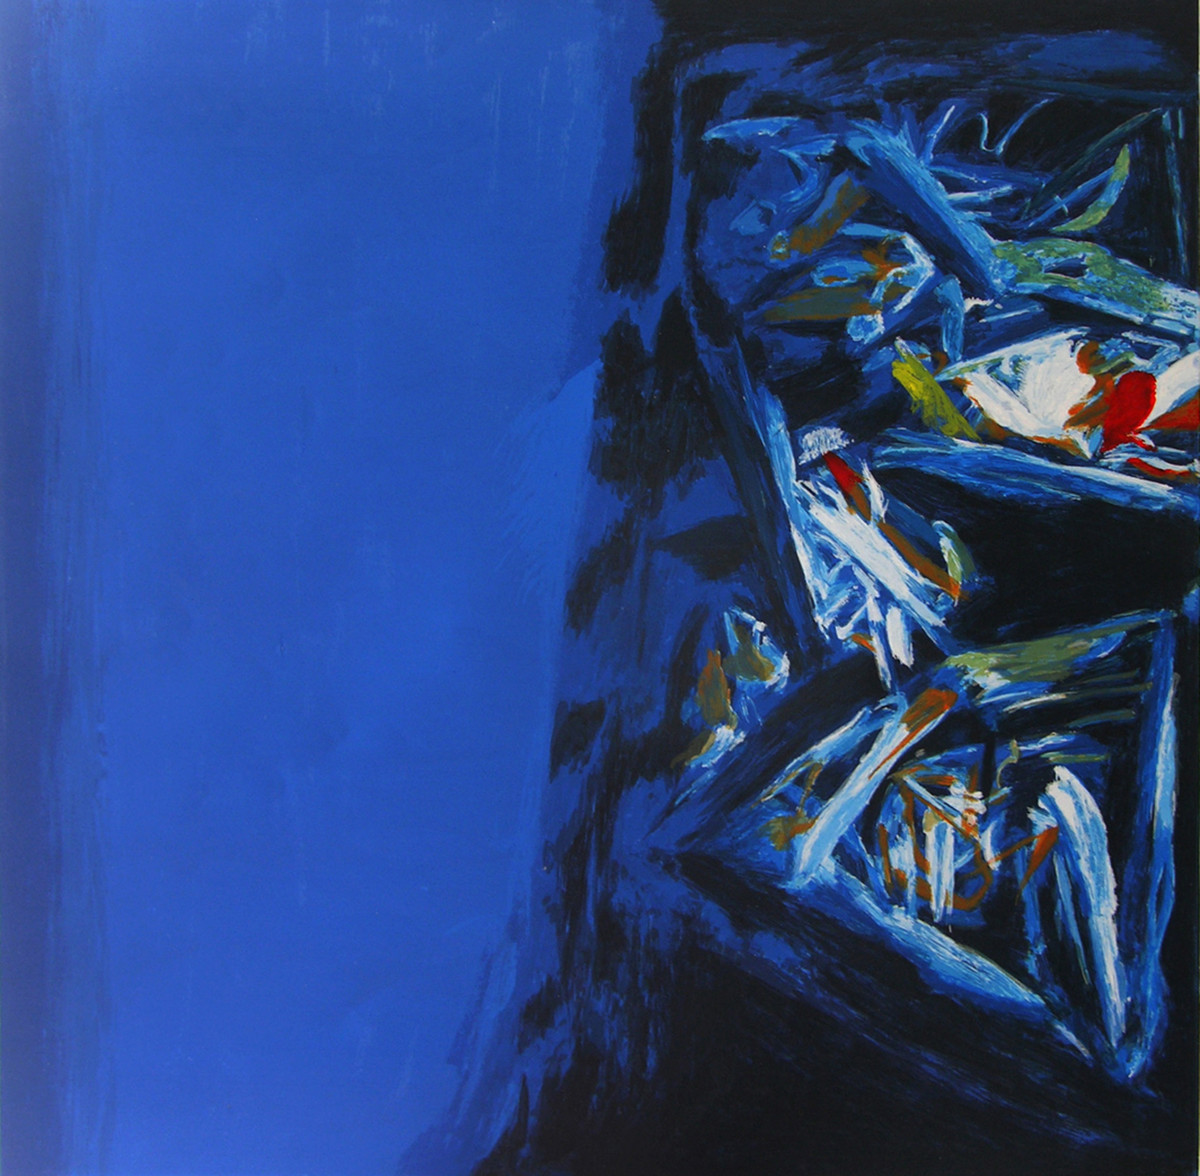 L'Hiver by S H Raza, Abstract Serigraph, Serigraph on Paper, Blue color